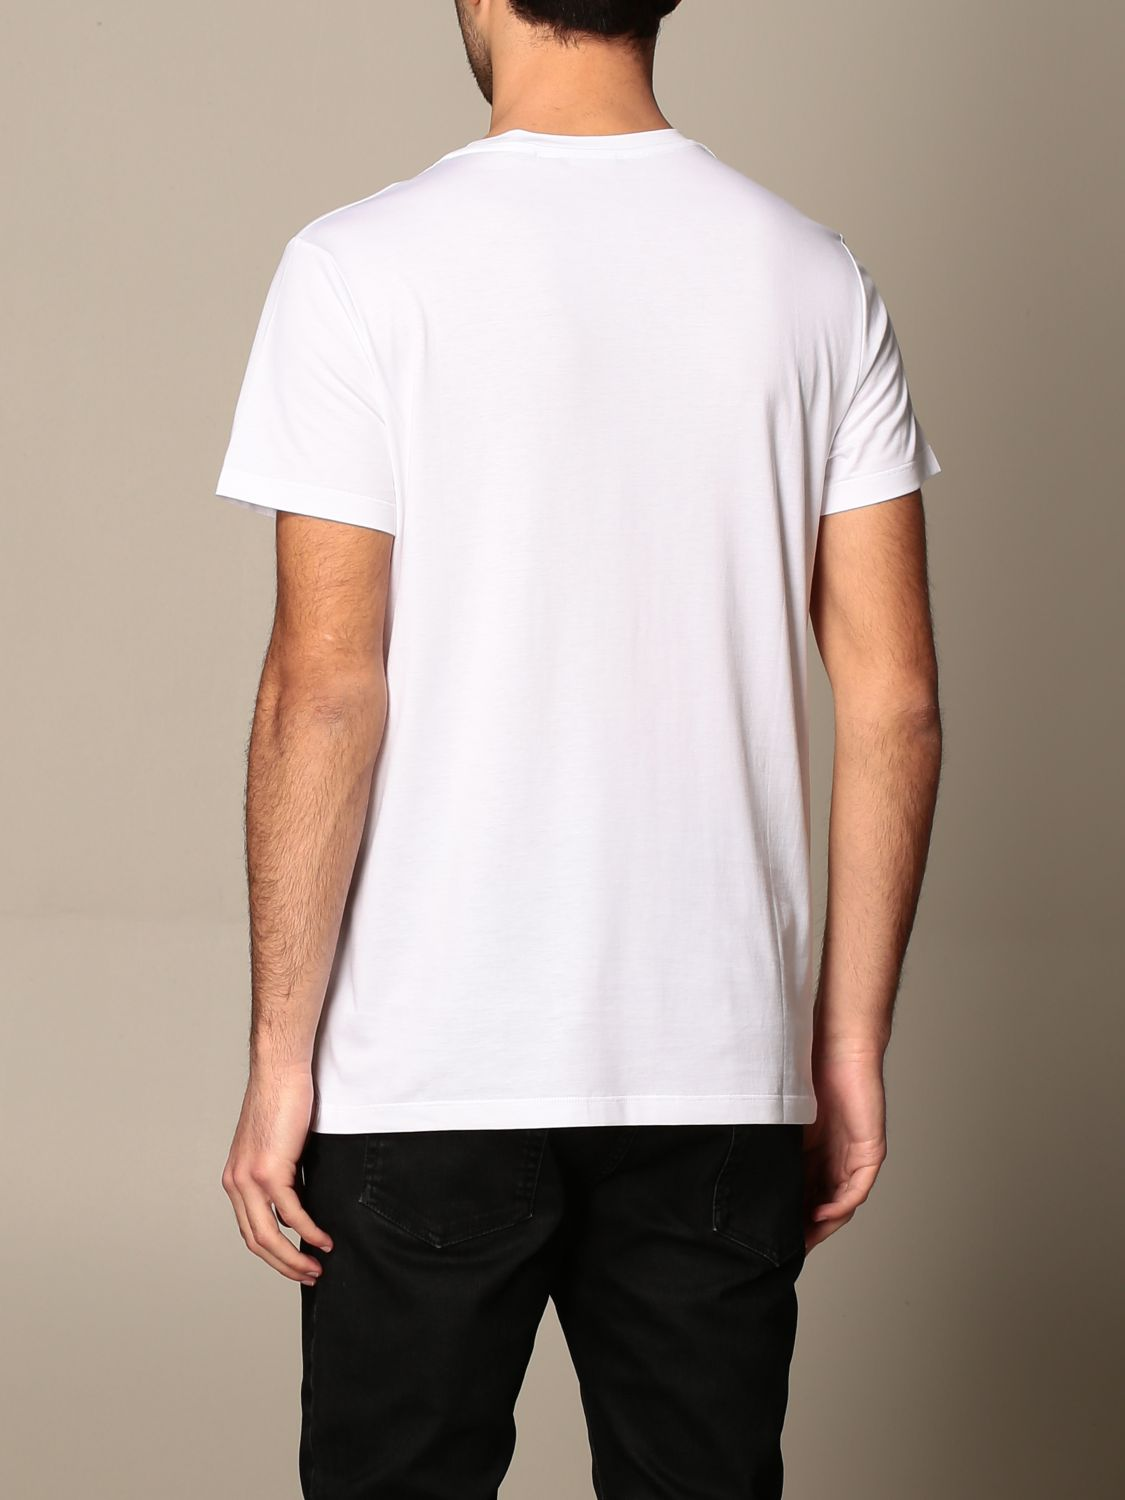 T-shirt Balmain: Balmain cotton T-shirt with laminated logo white 3